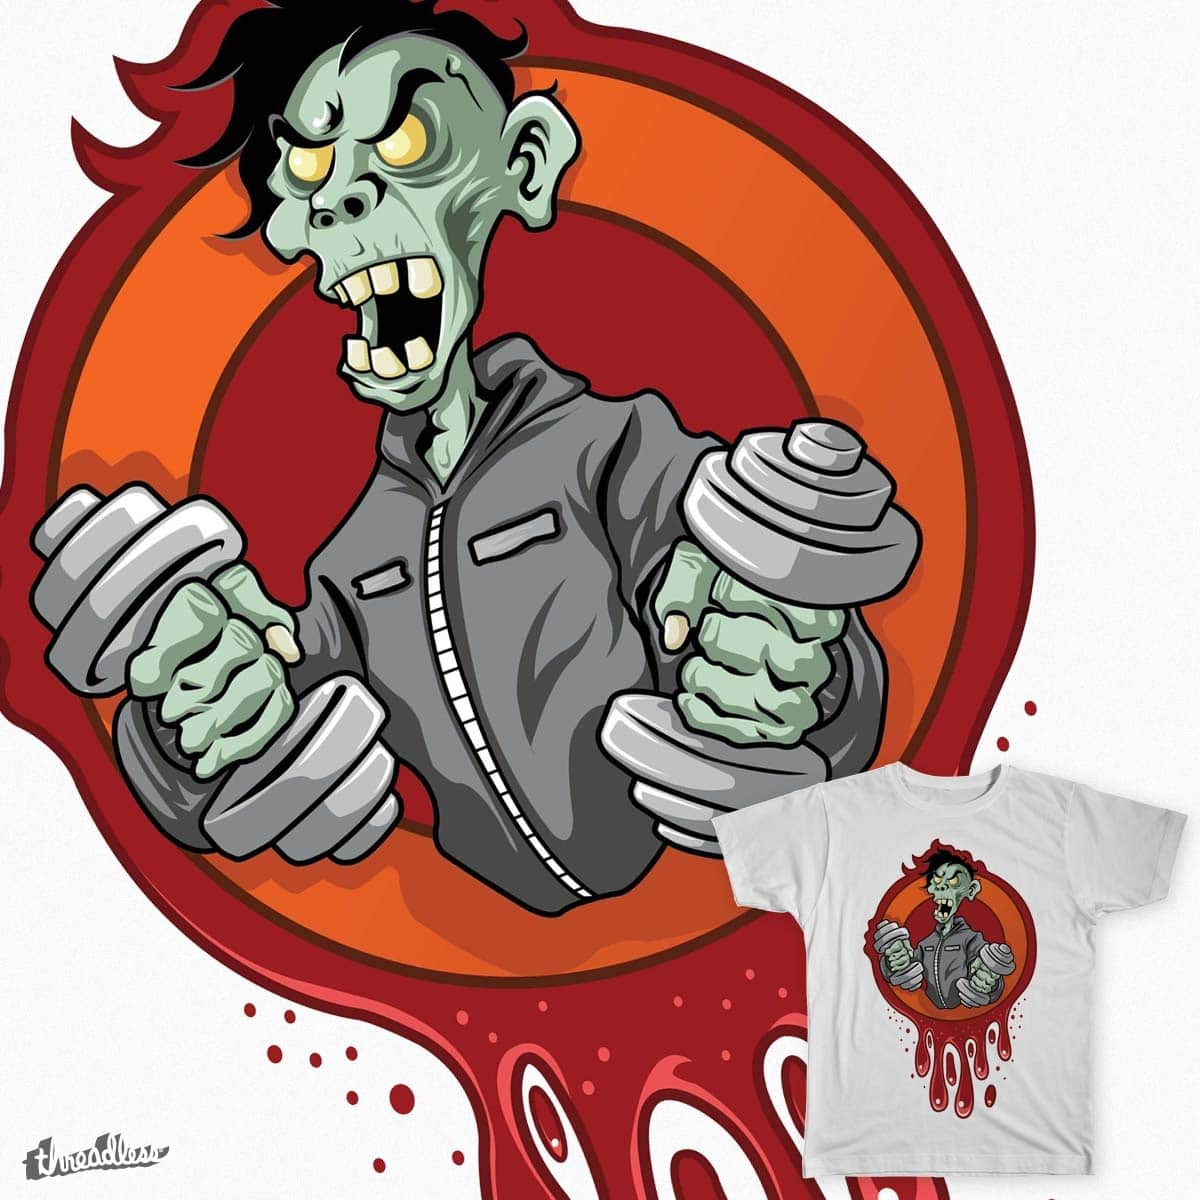 Undead Fit by Tomrez on Threadless